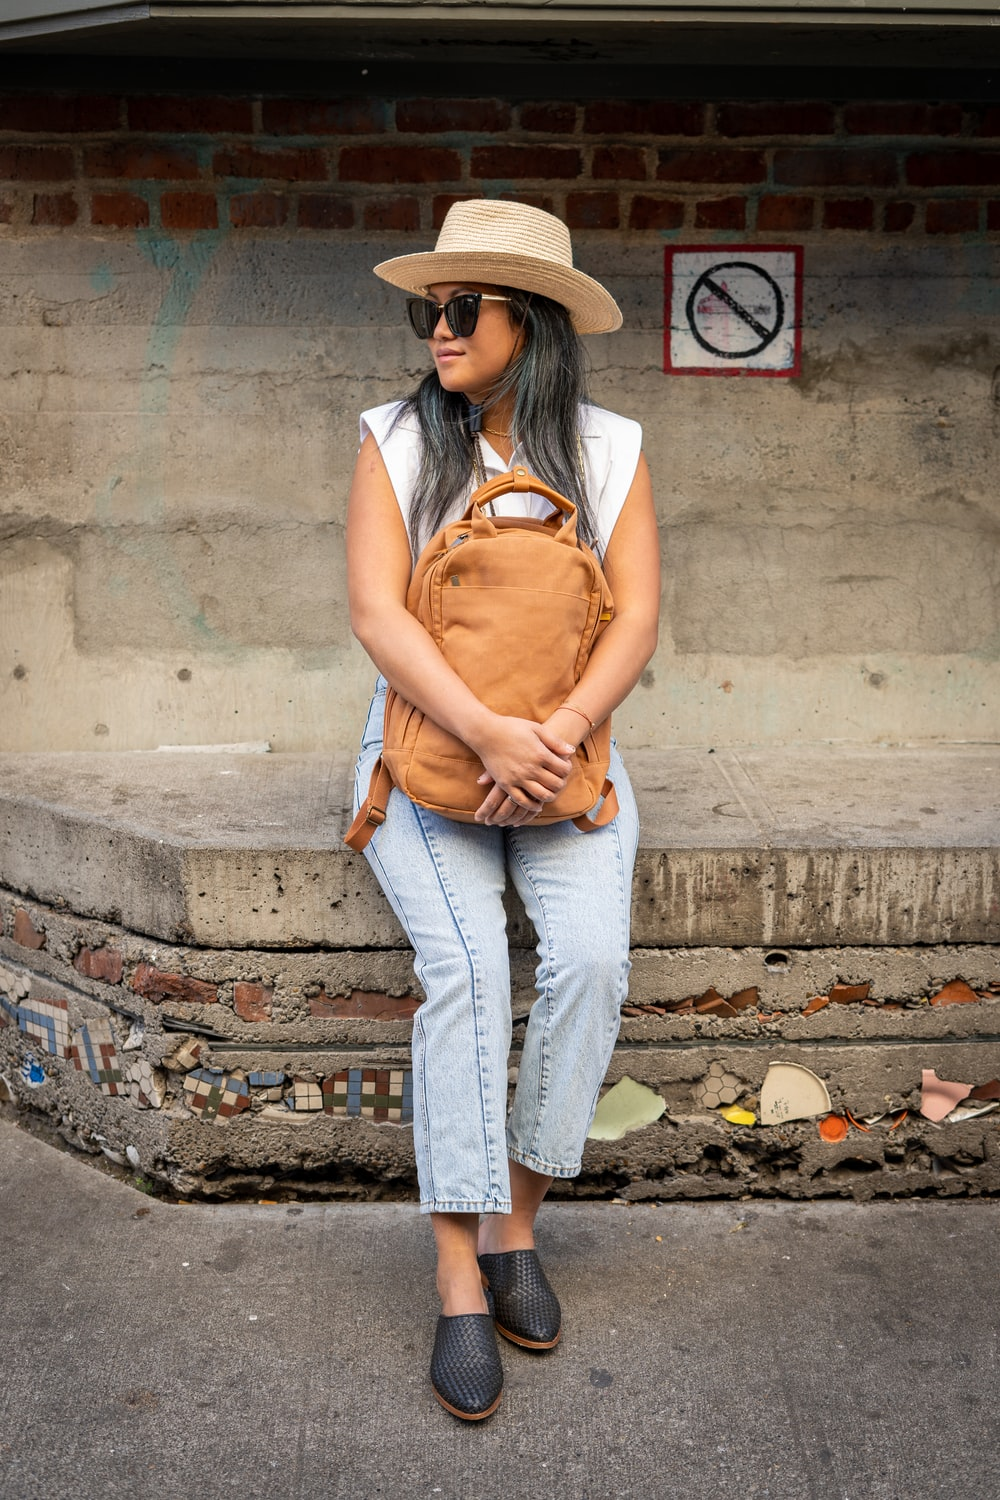 woman in brown tank top and blue denim jeans wearing brown hat standing on gray concrete